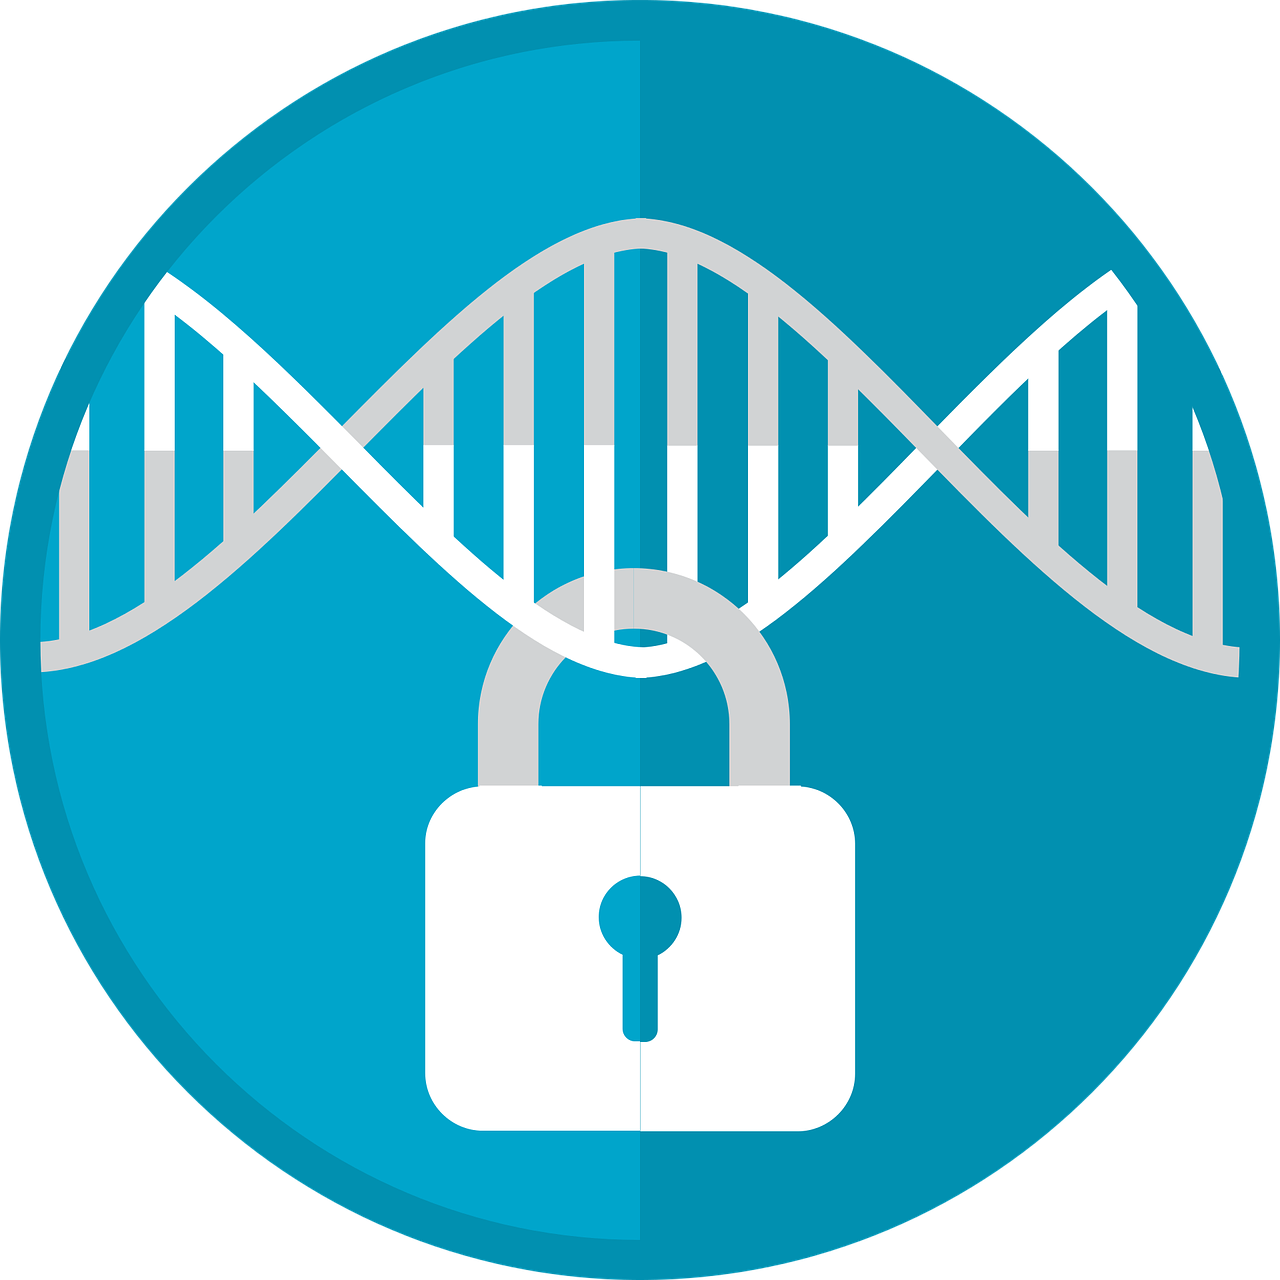 Download free photo of Genomic privacy, genomic security, genome ...